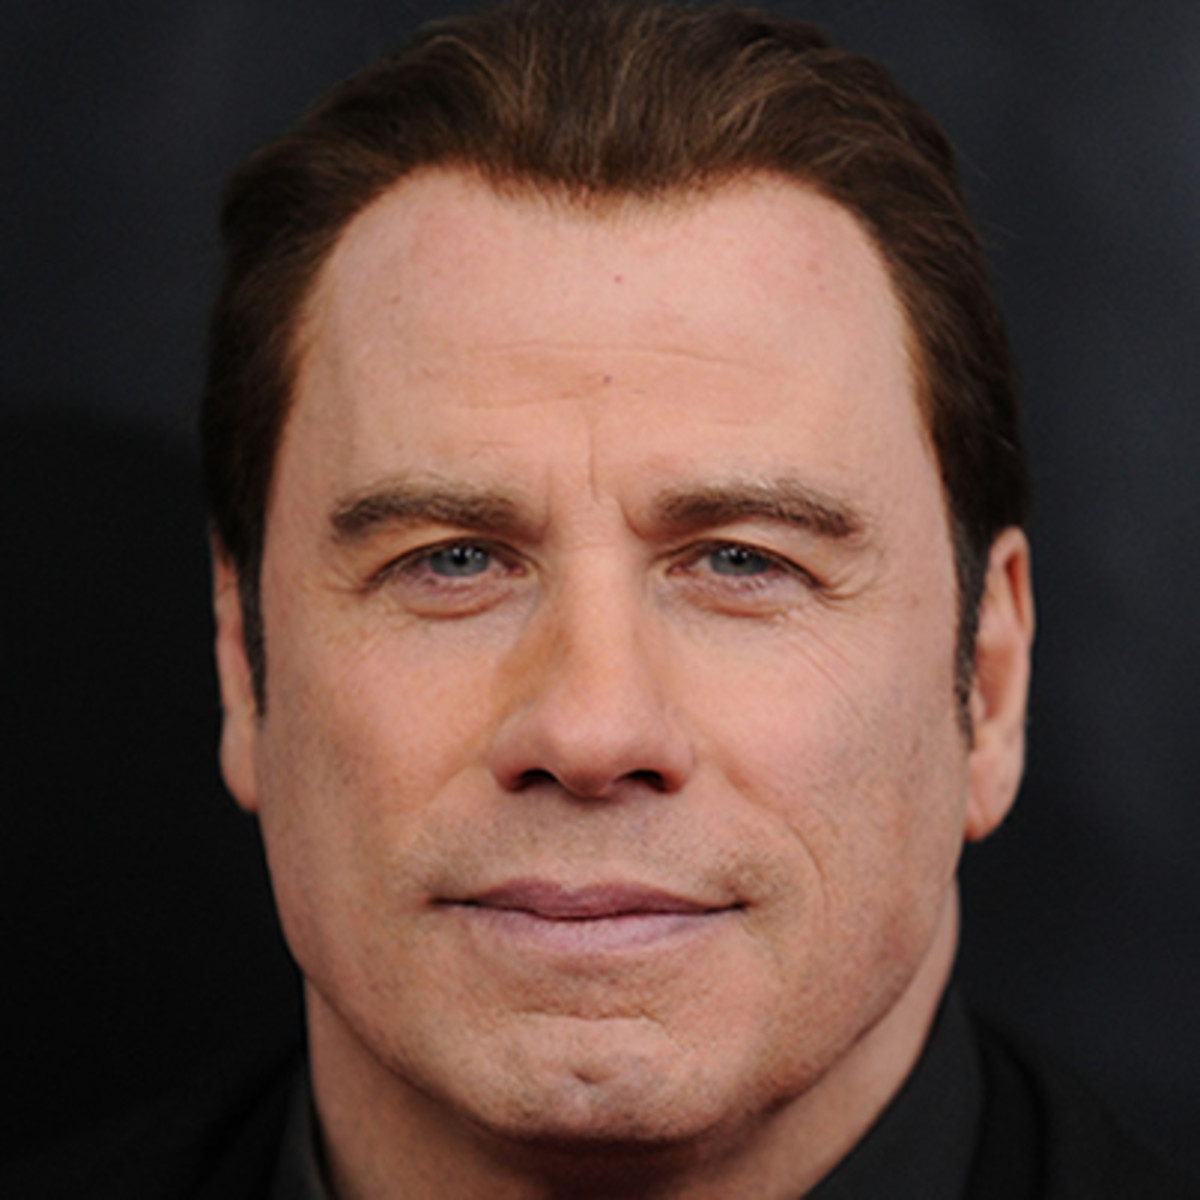 Uh uh! John Travolta is being accused of sexually assaulting a man